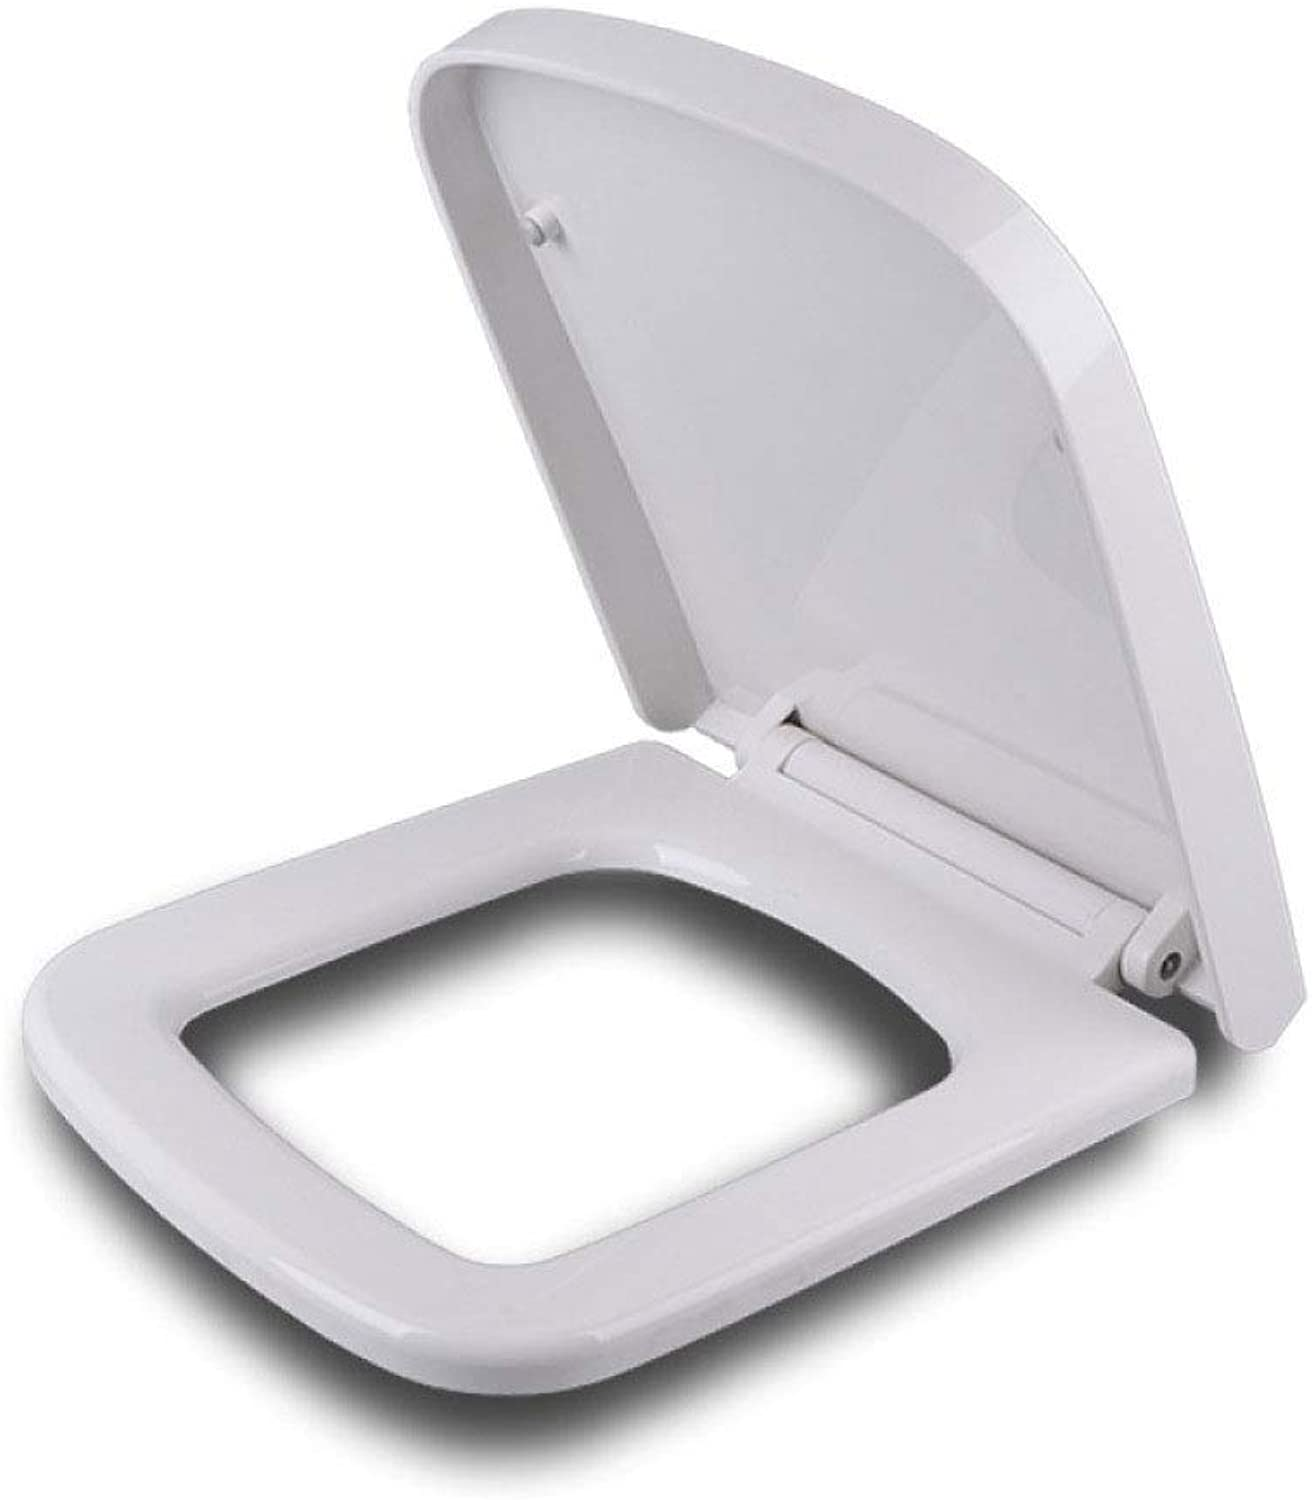 CZTC Universal Toilet Seat Square Drop Mute Antibacterial Ultra Resistant Top Mounted Toilet Lid For Bathroom And Washroom